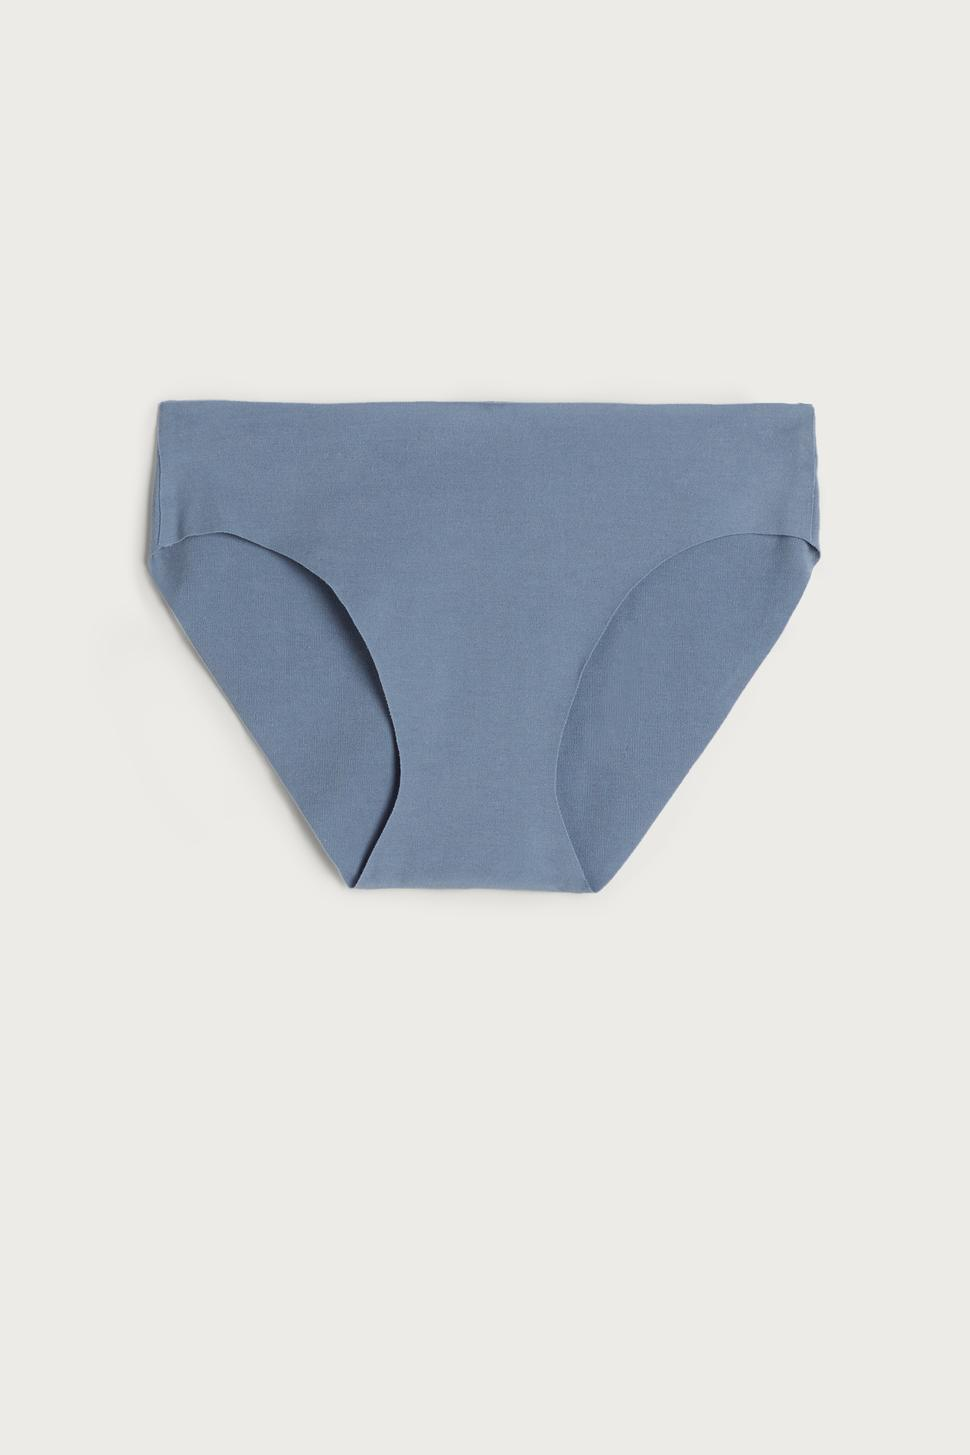 best loved low price sale most desirable fashion Raw-Cut Cotton Briefs